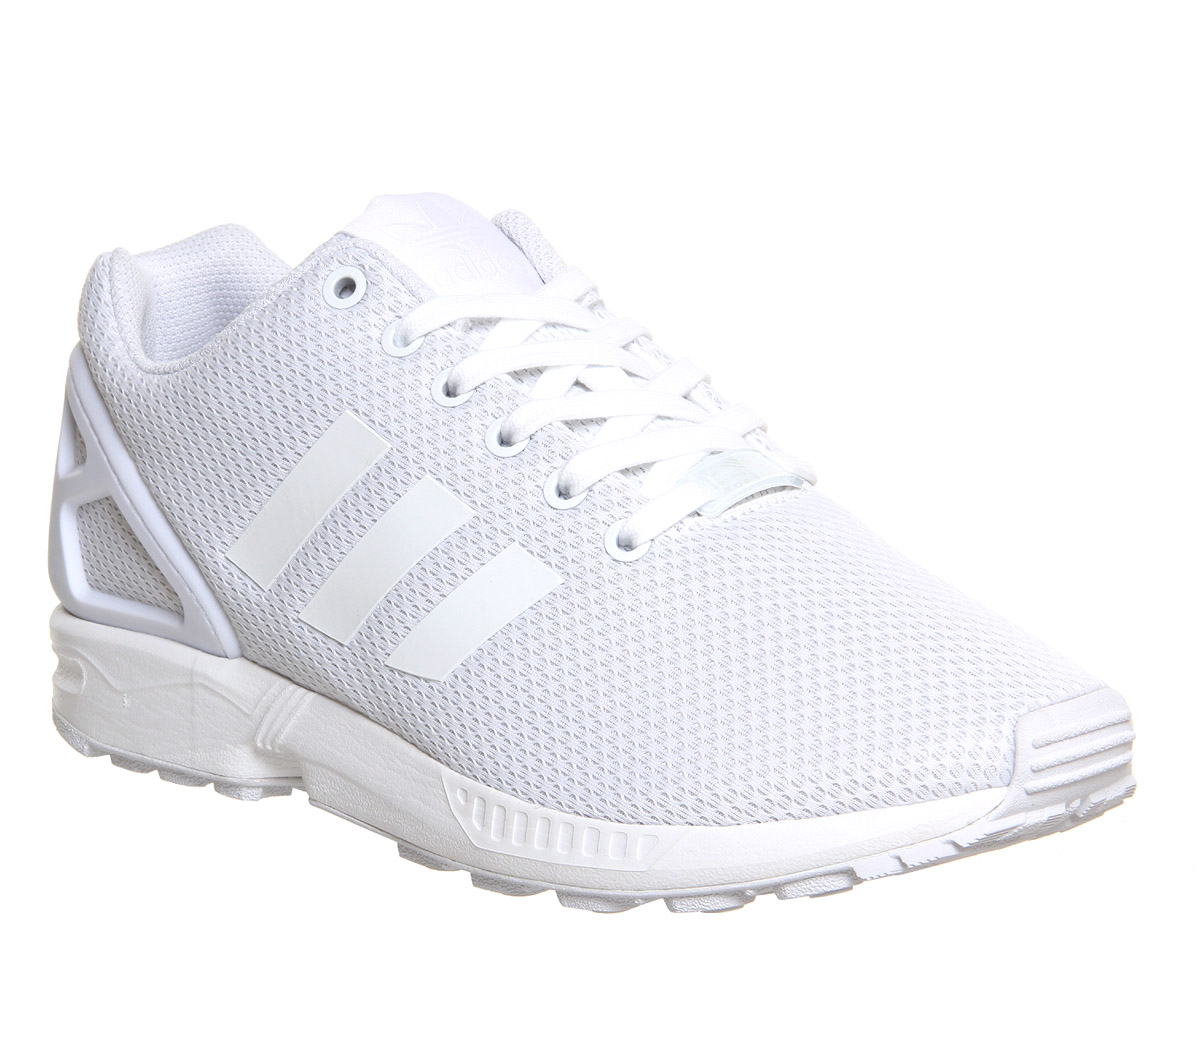 pretty nice 7e673 1ea77 Adidas Zx Flux All White Mens wallbank-lfc.co.uk